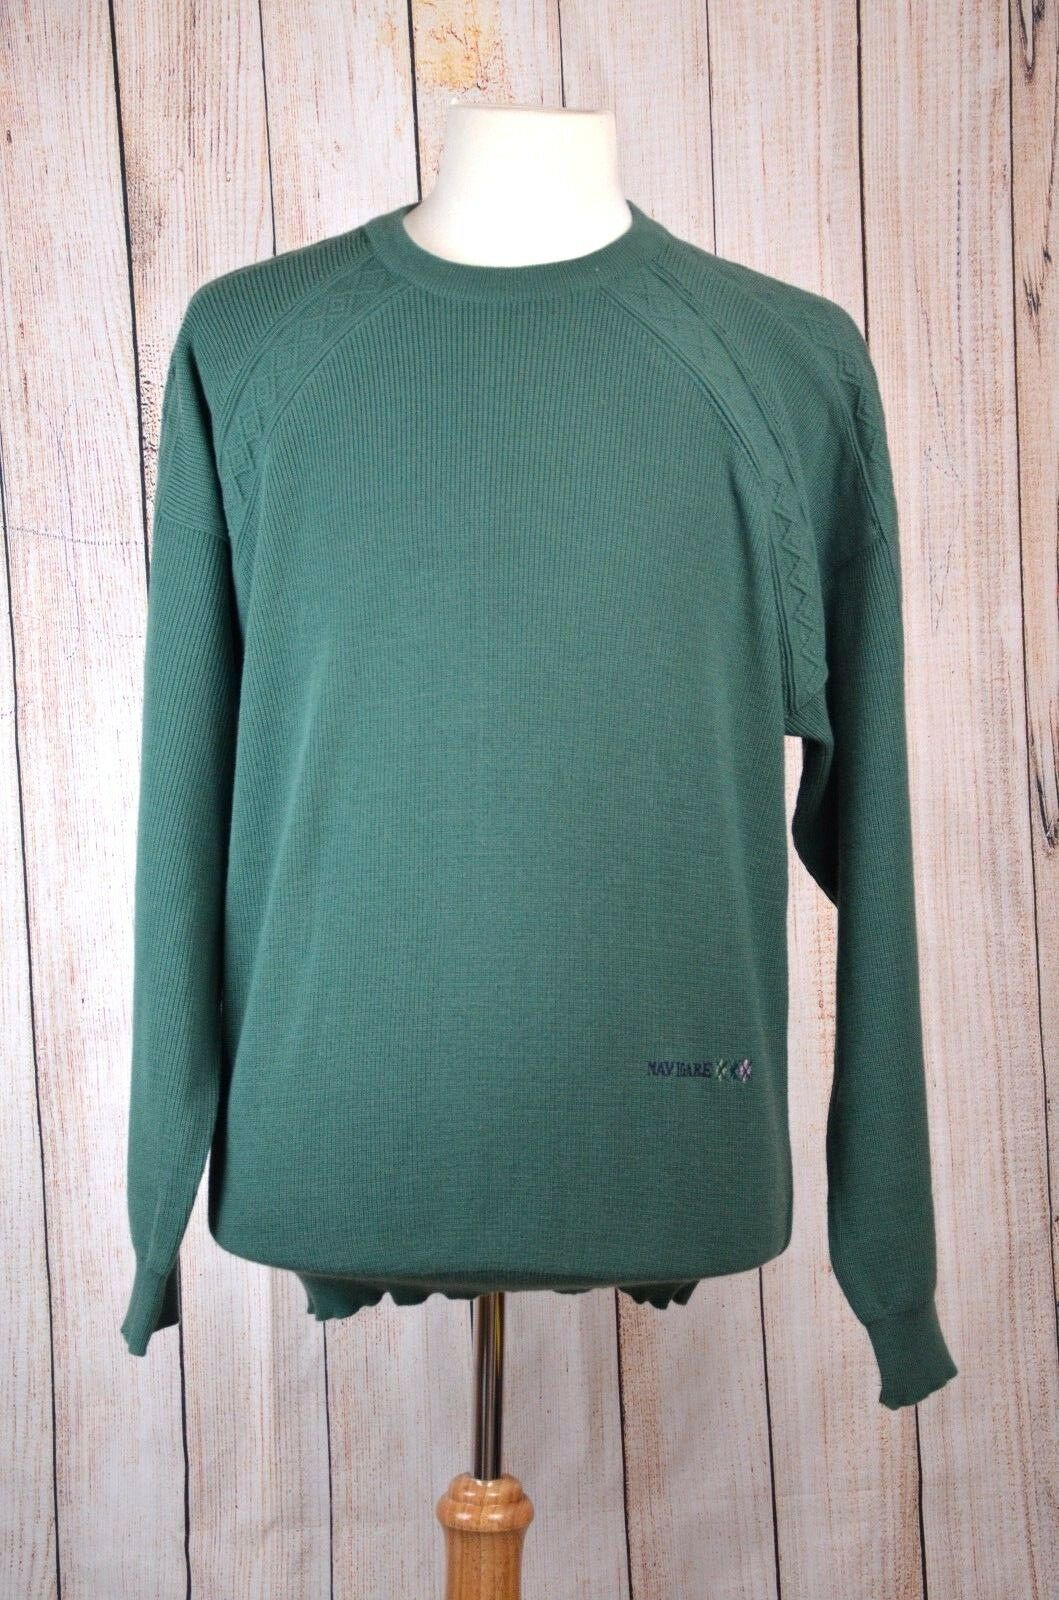 Navigare Mens XL Embroidery Sweater Sailing Yachting Green